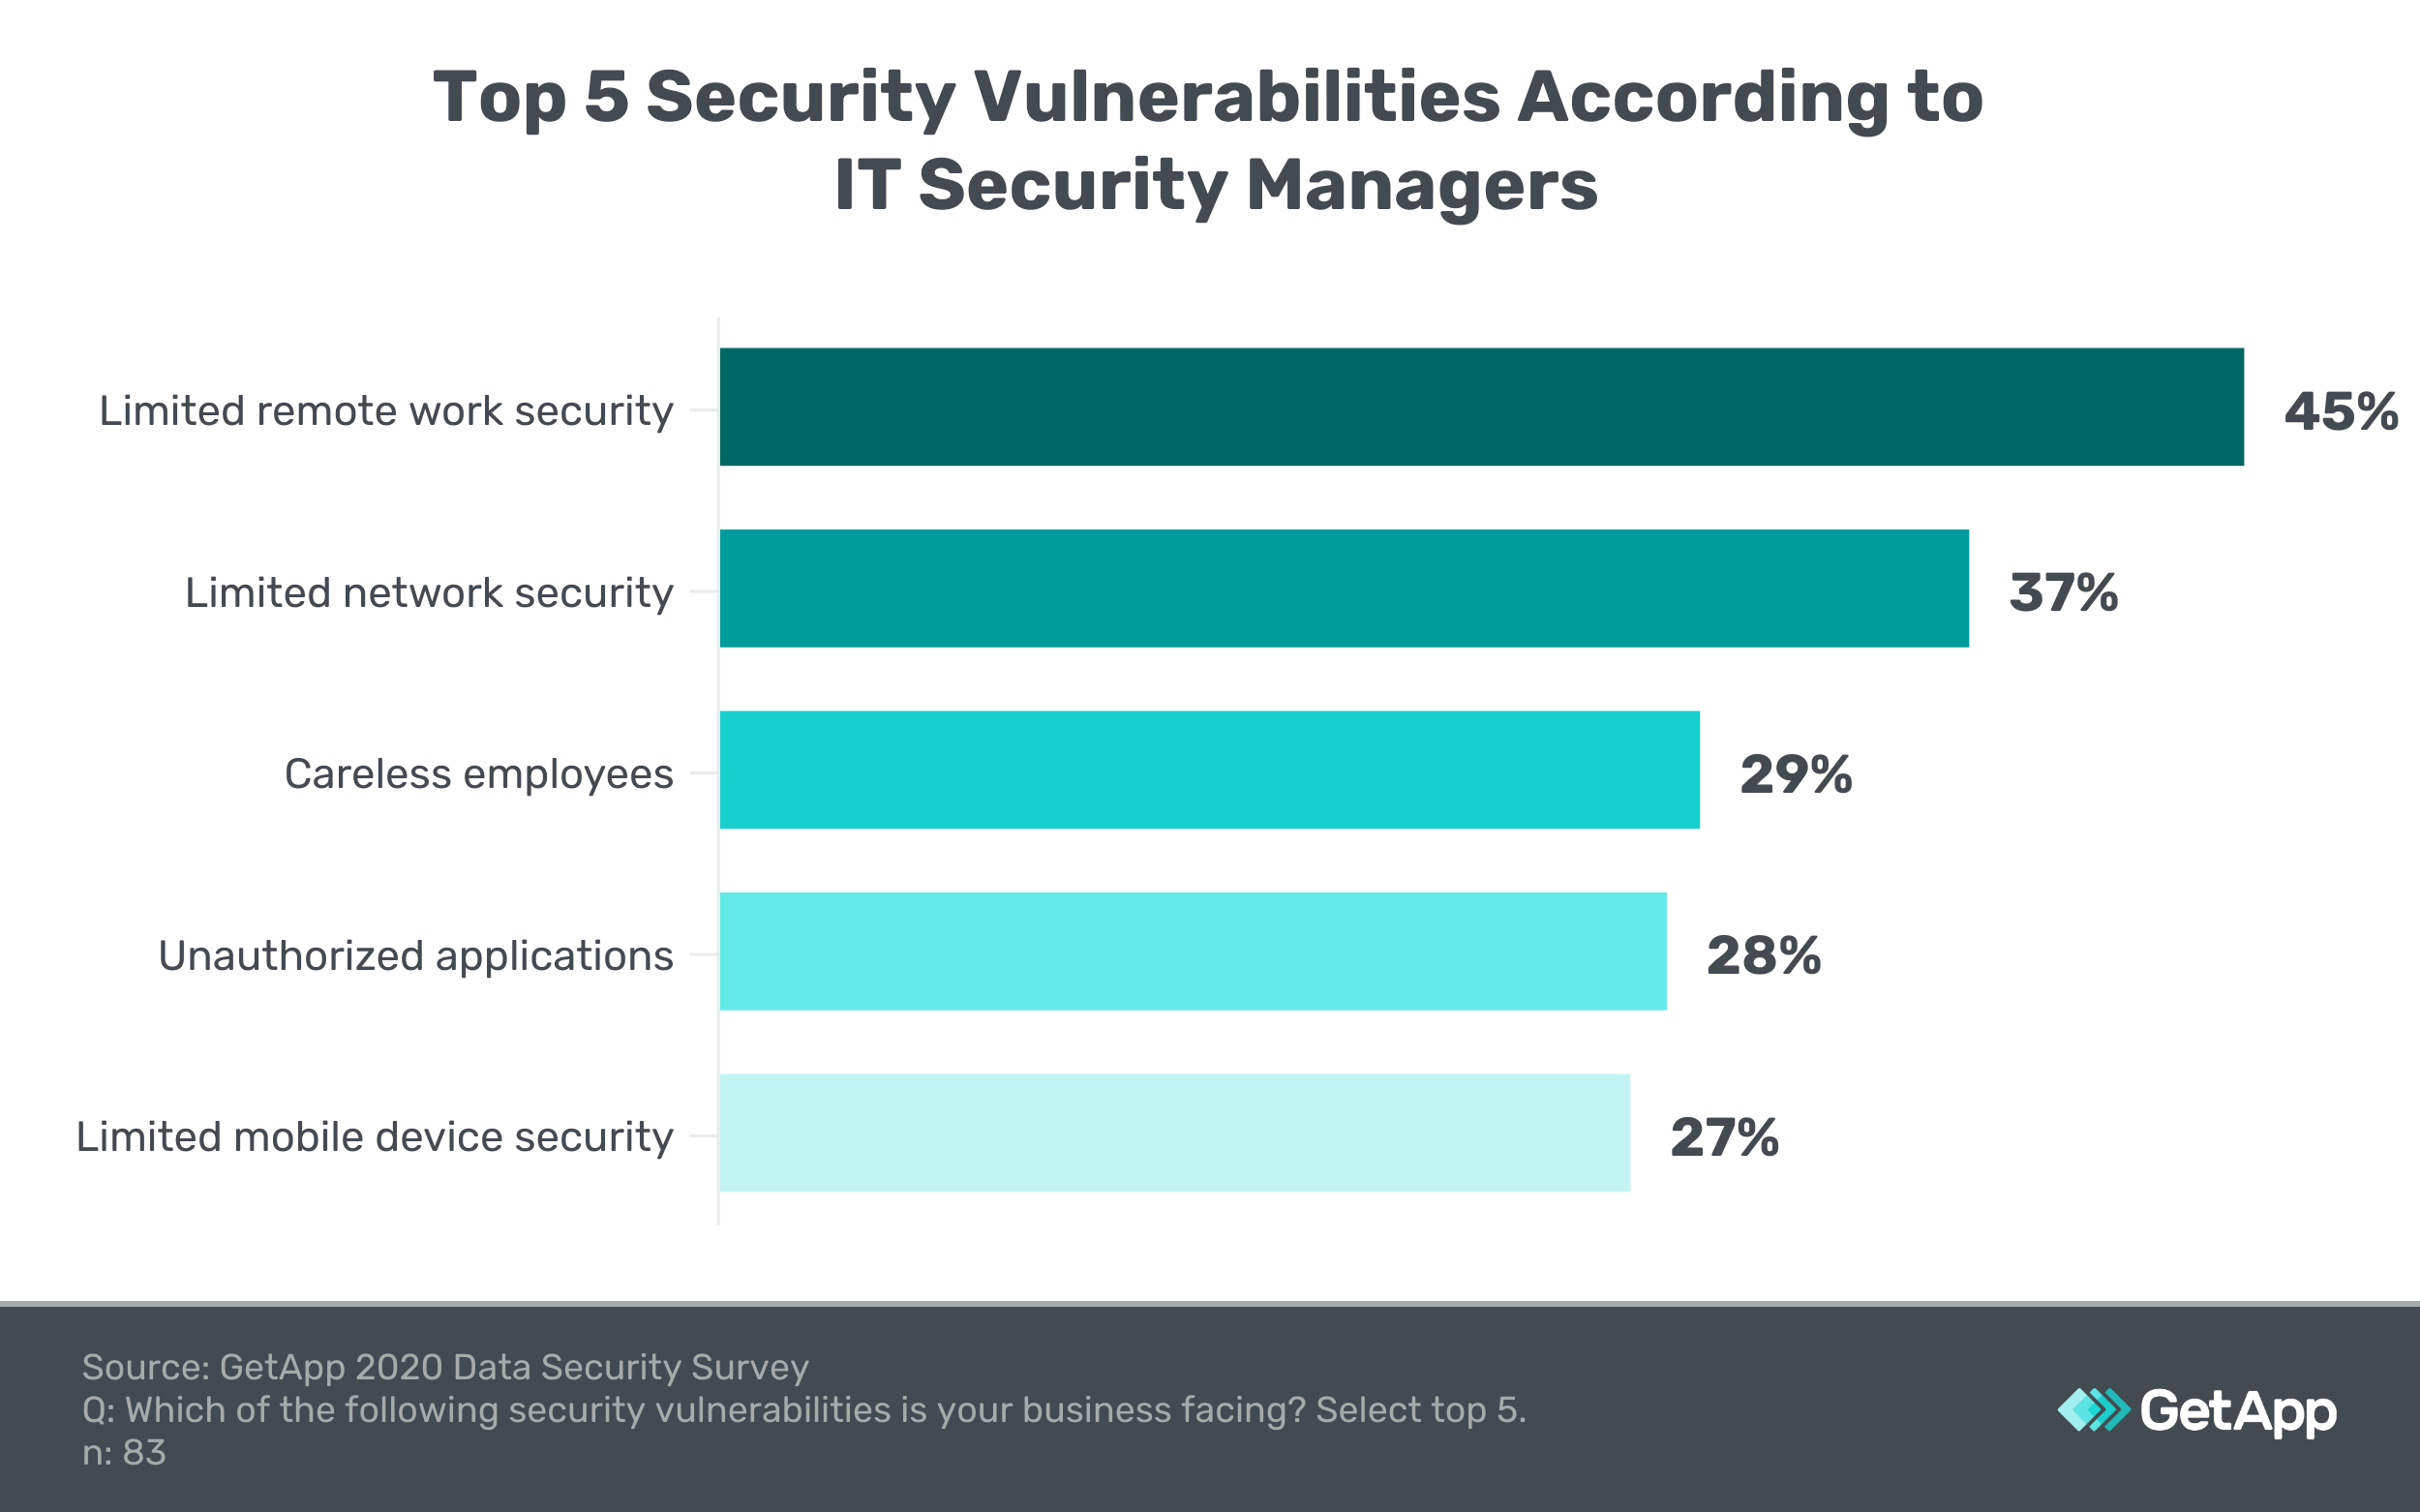 Graphic showing the top five security vulnerabilities according to IT security managers.